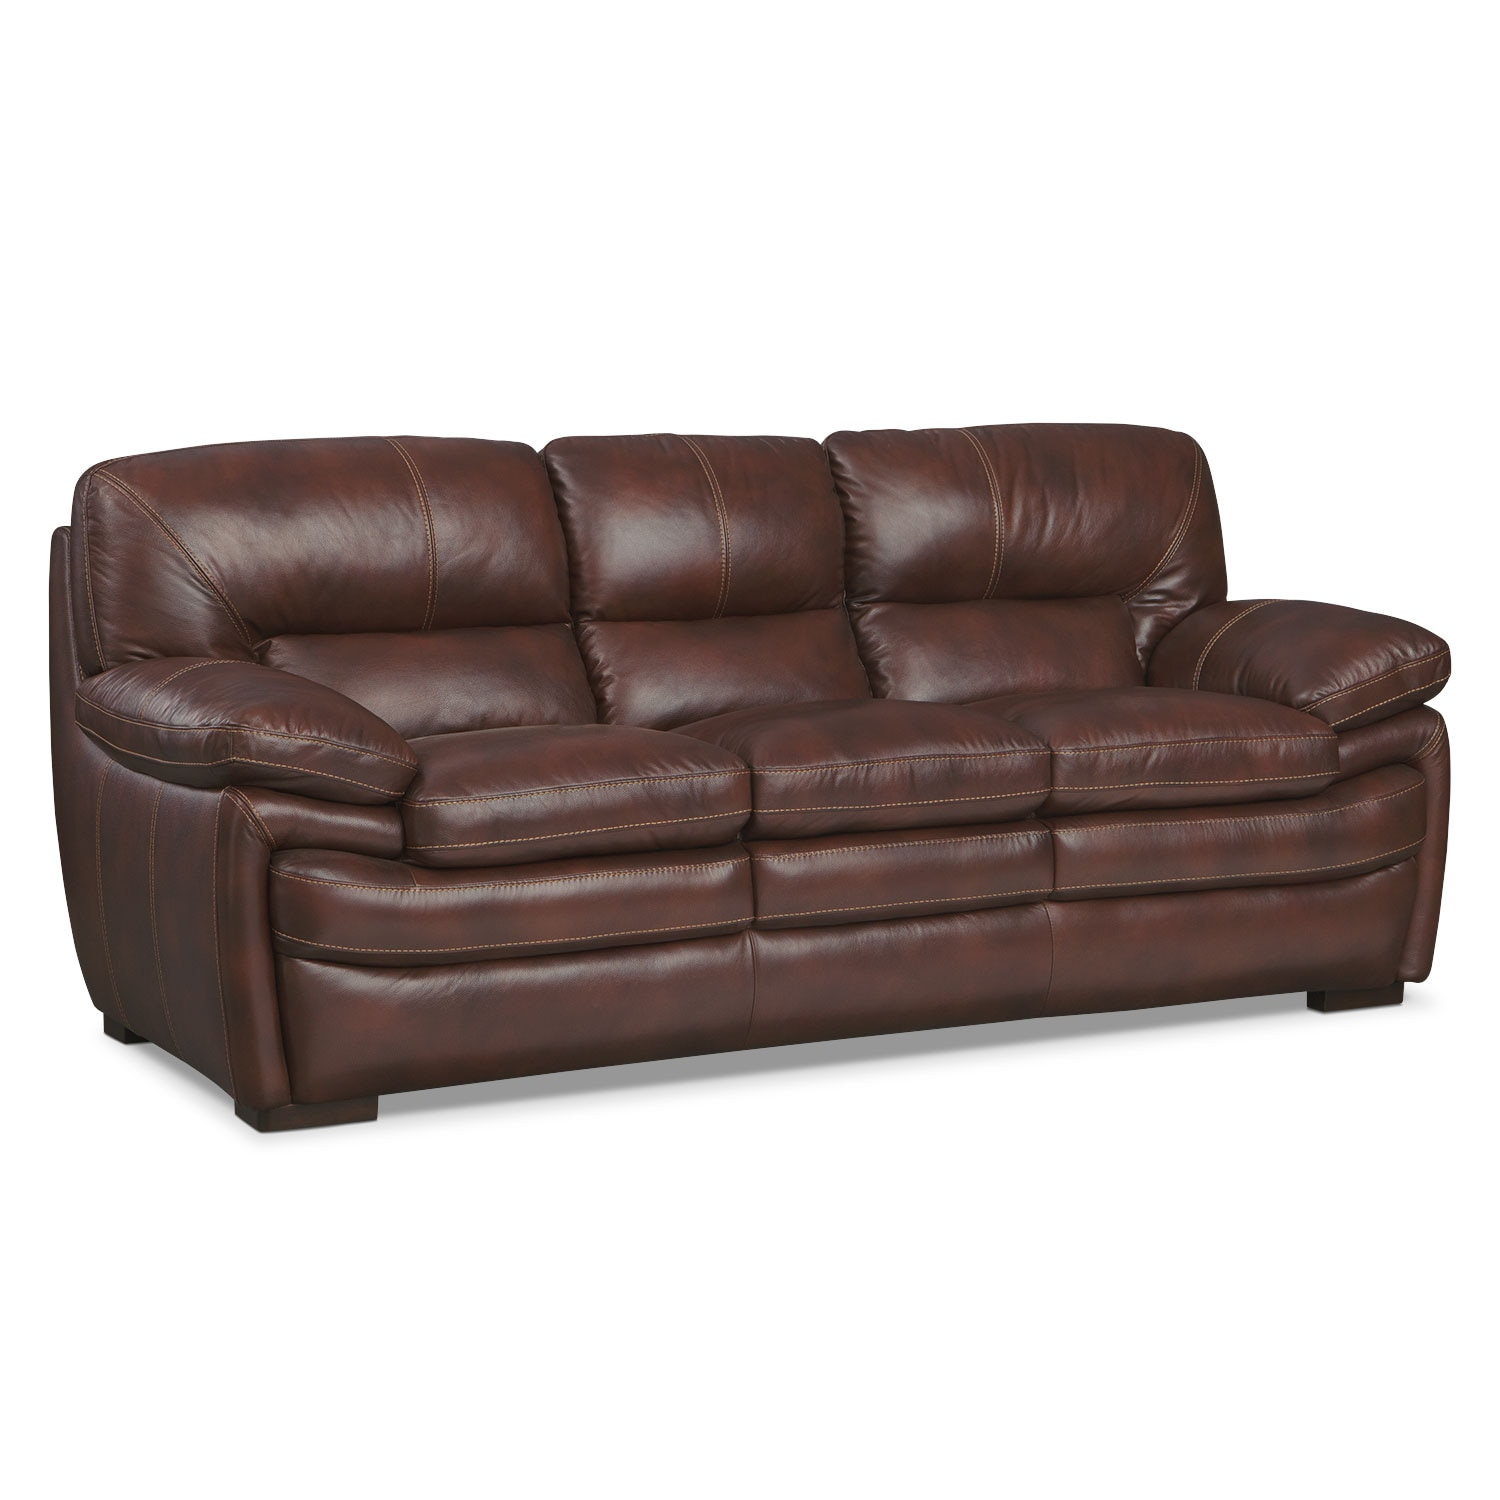 Living Room Furniture - Peyton Chestnut Sofa